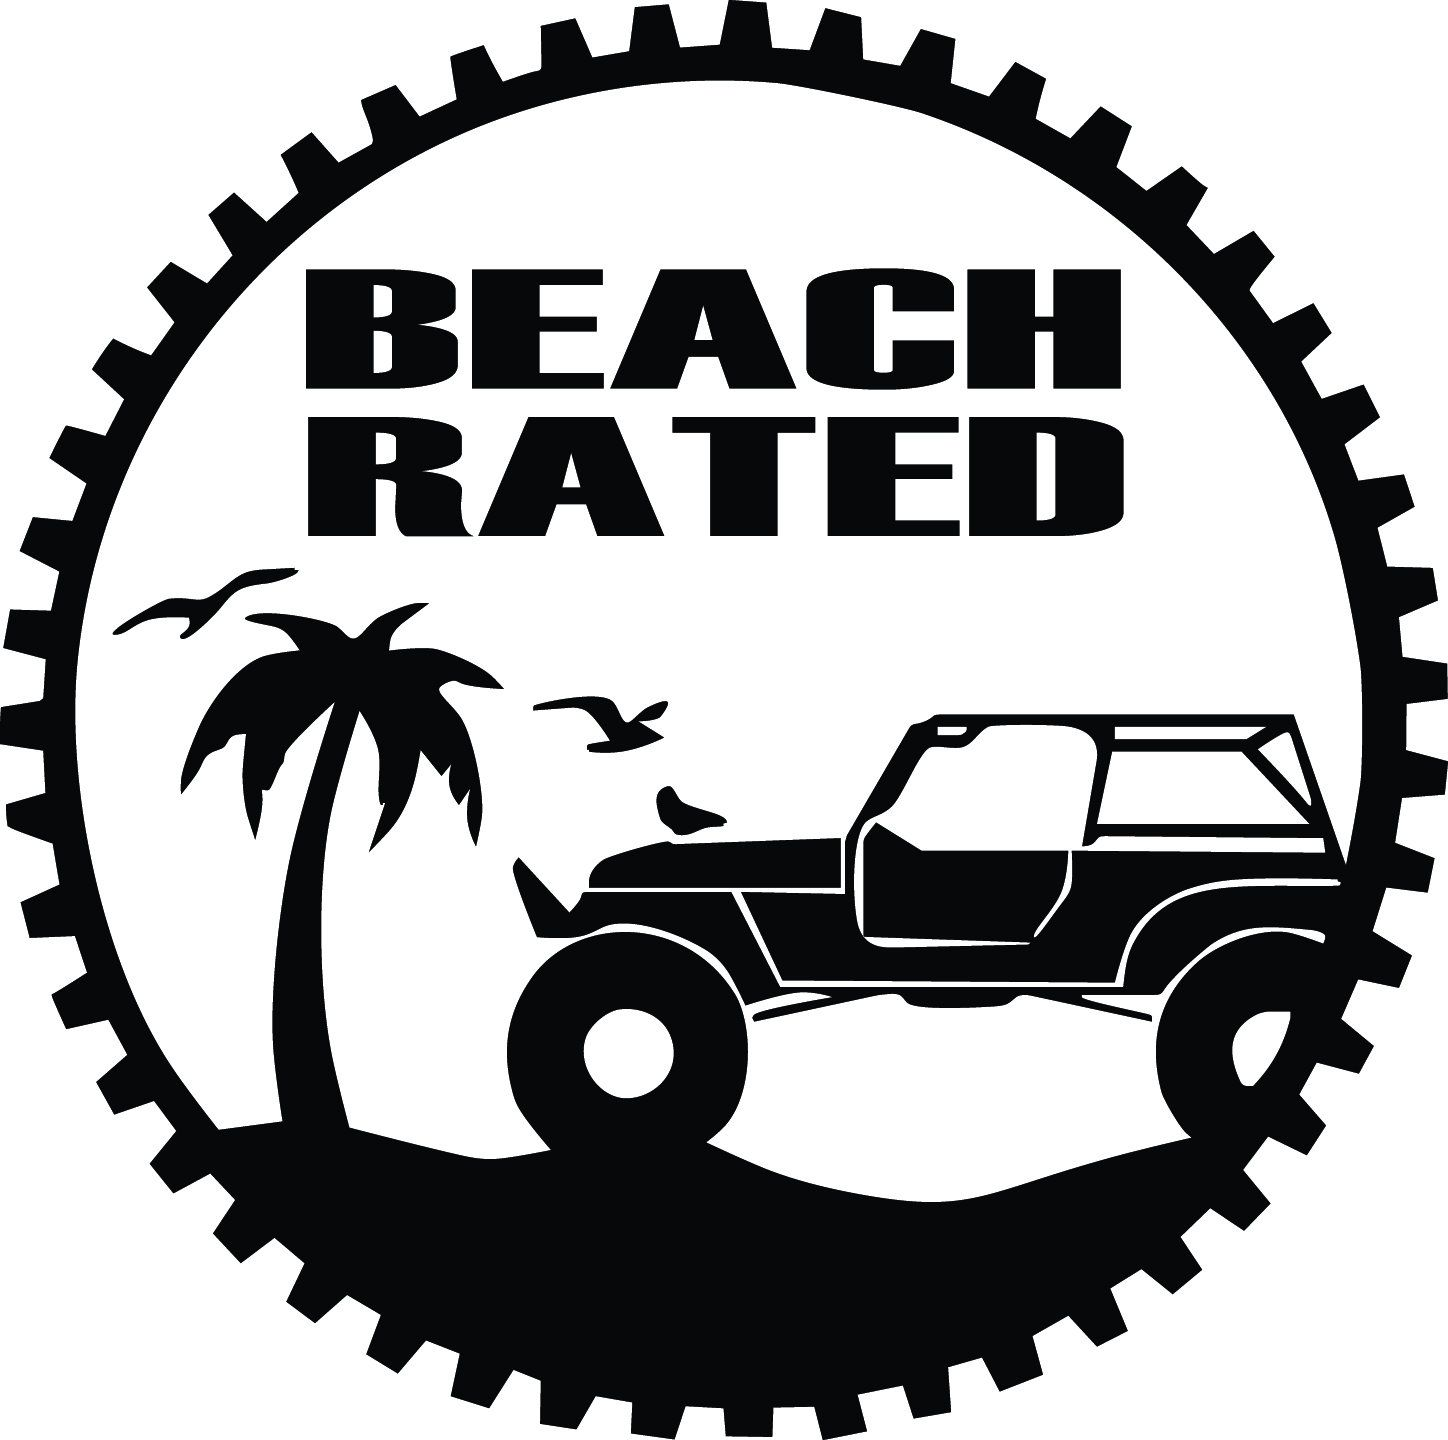 Excited To Share The Latest Addition To My Etsy Shop Beach Rated